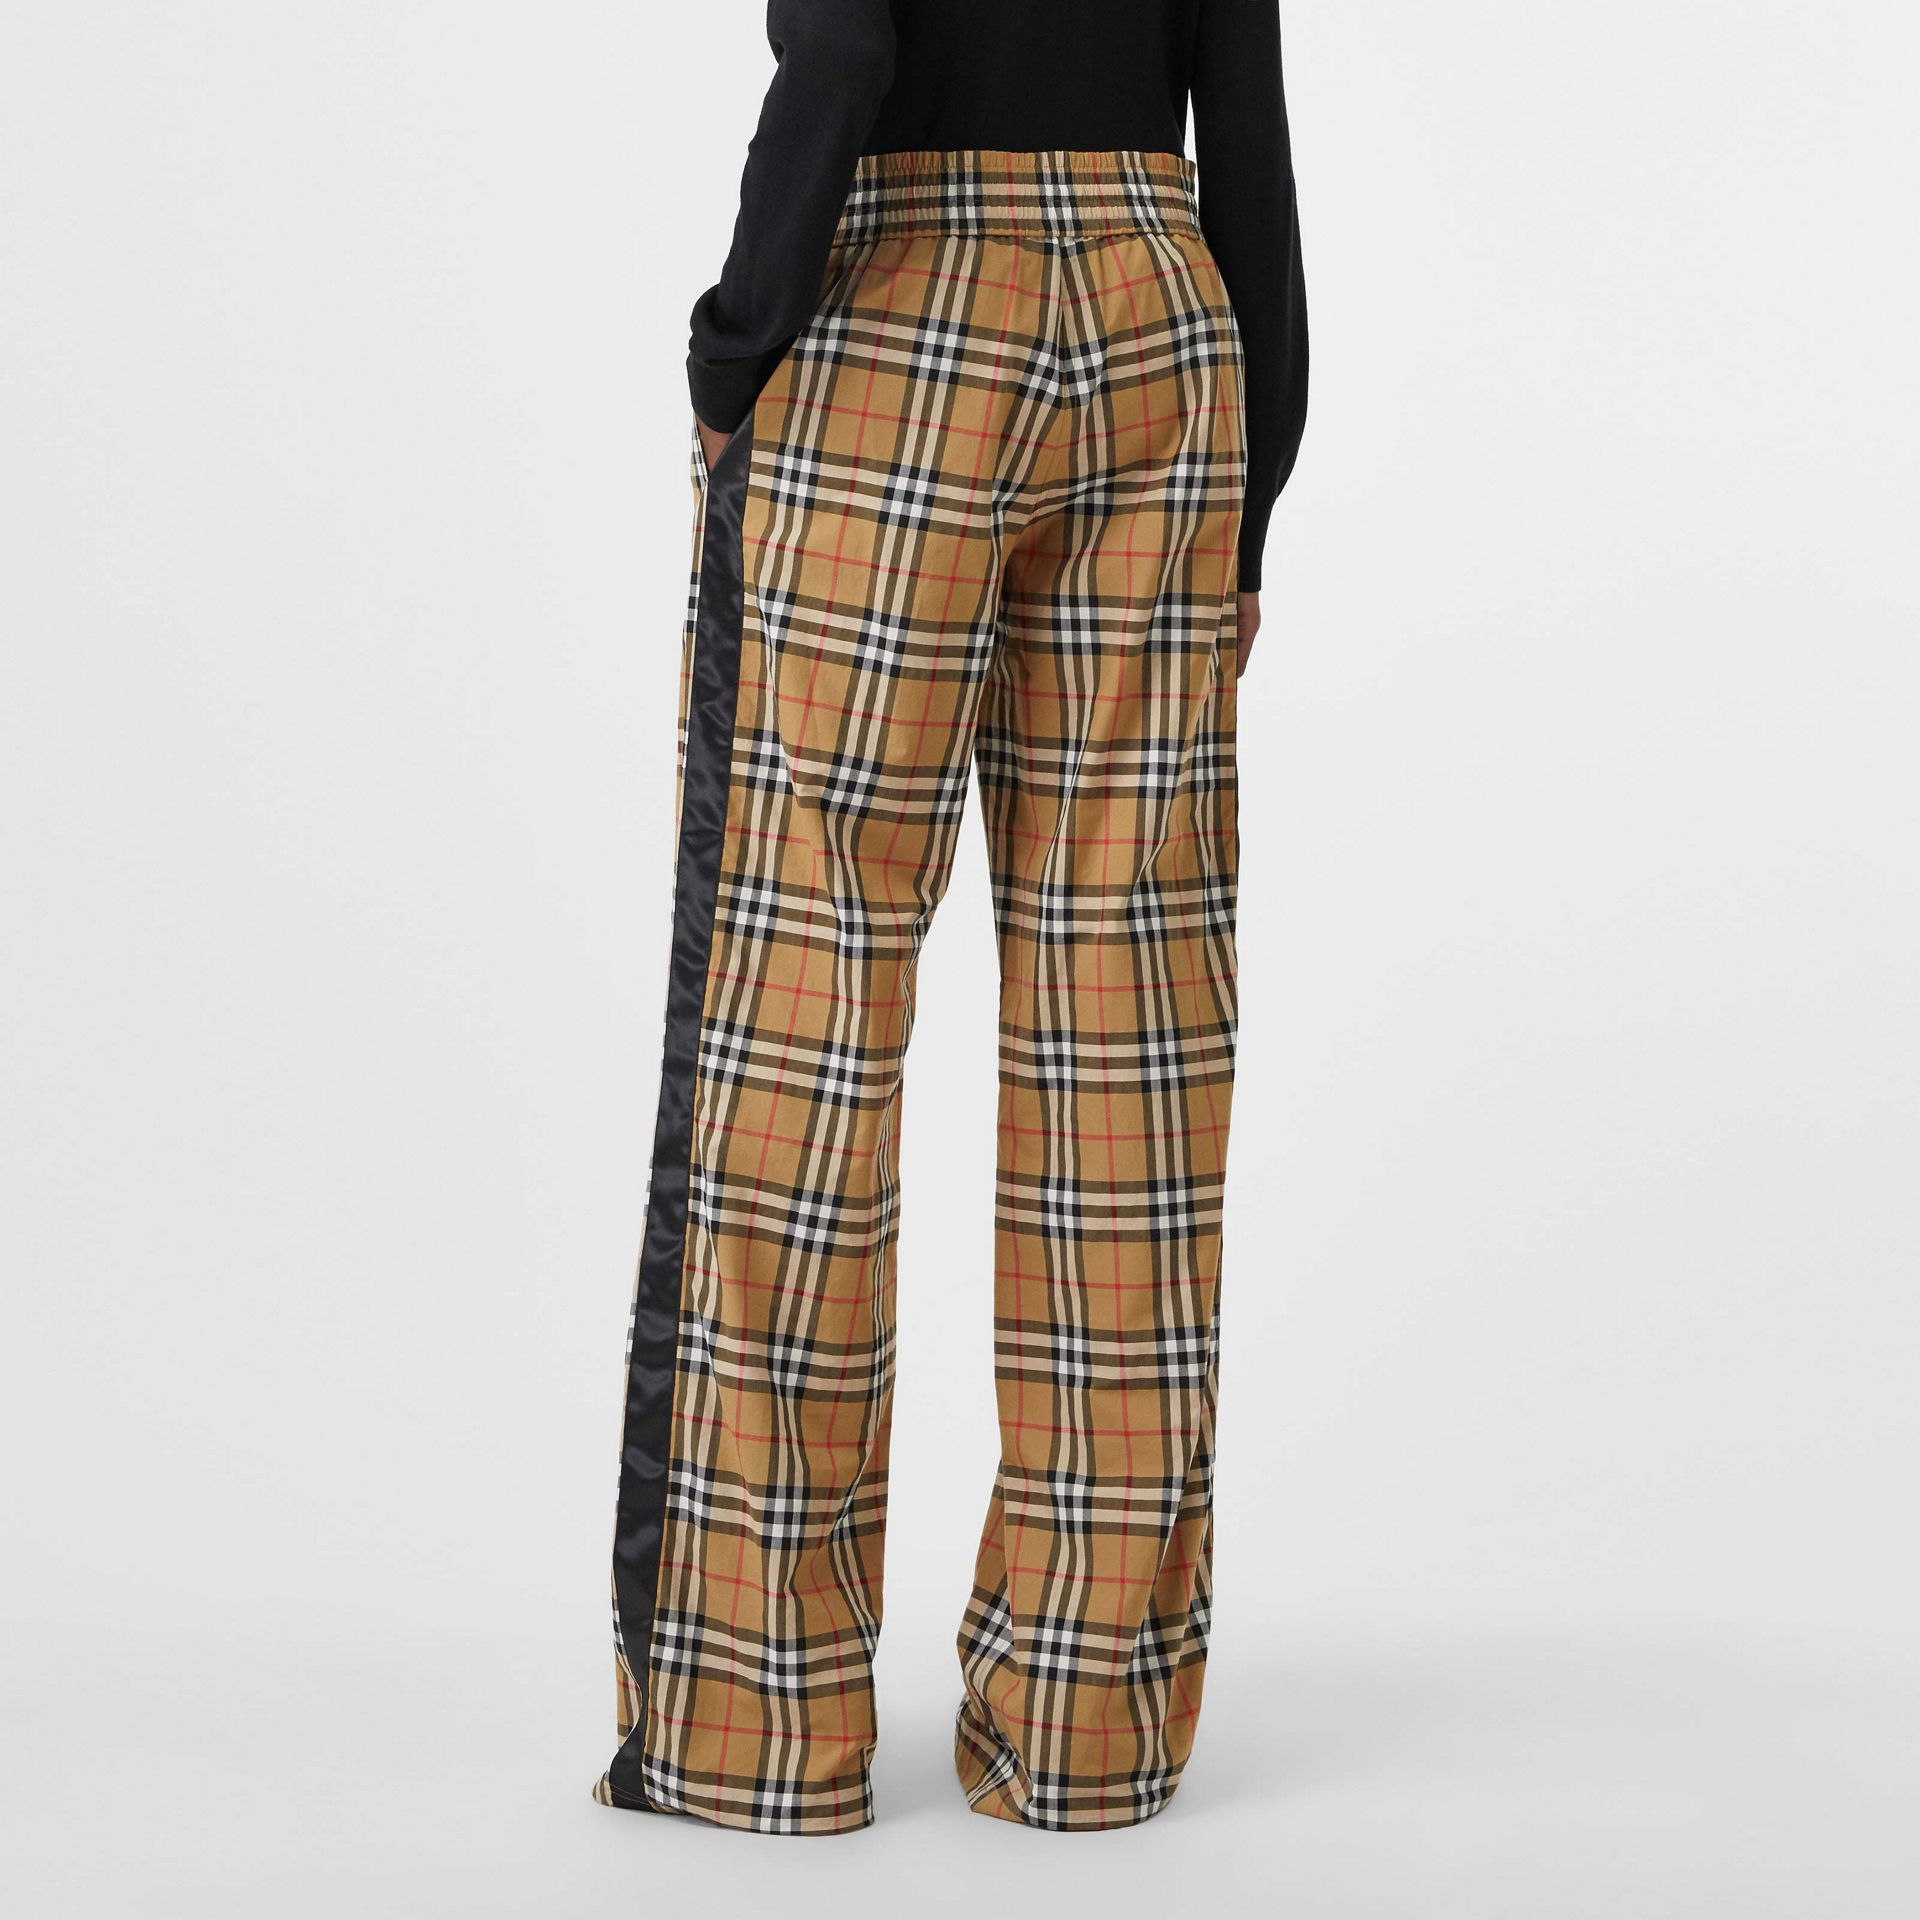 Satin Trim Vintage Check Cotton Trousers in Antique Yellow - Women | Burberry Hong Kong S.A.R - gallery image 2